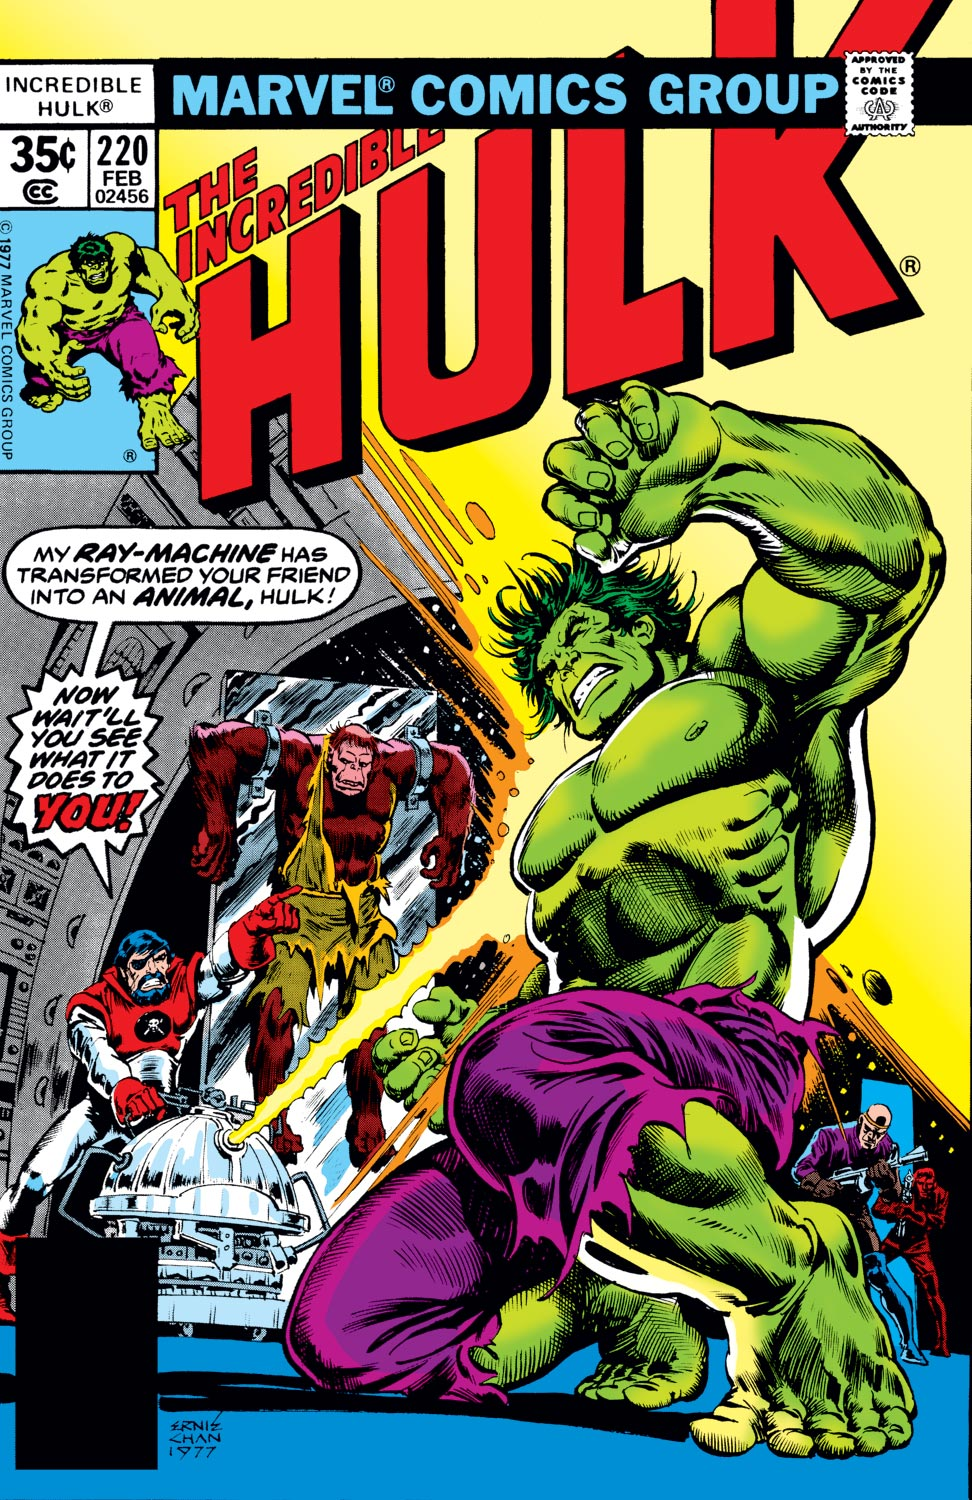 Incredible Hulk (1962) #220